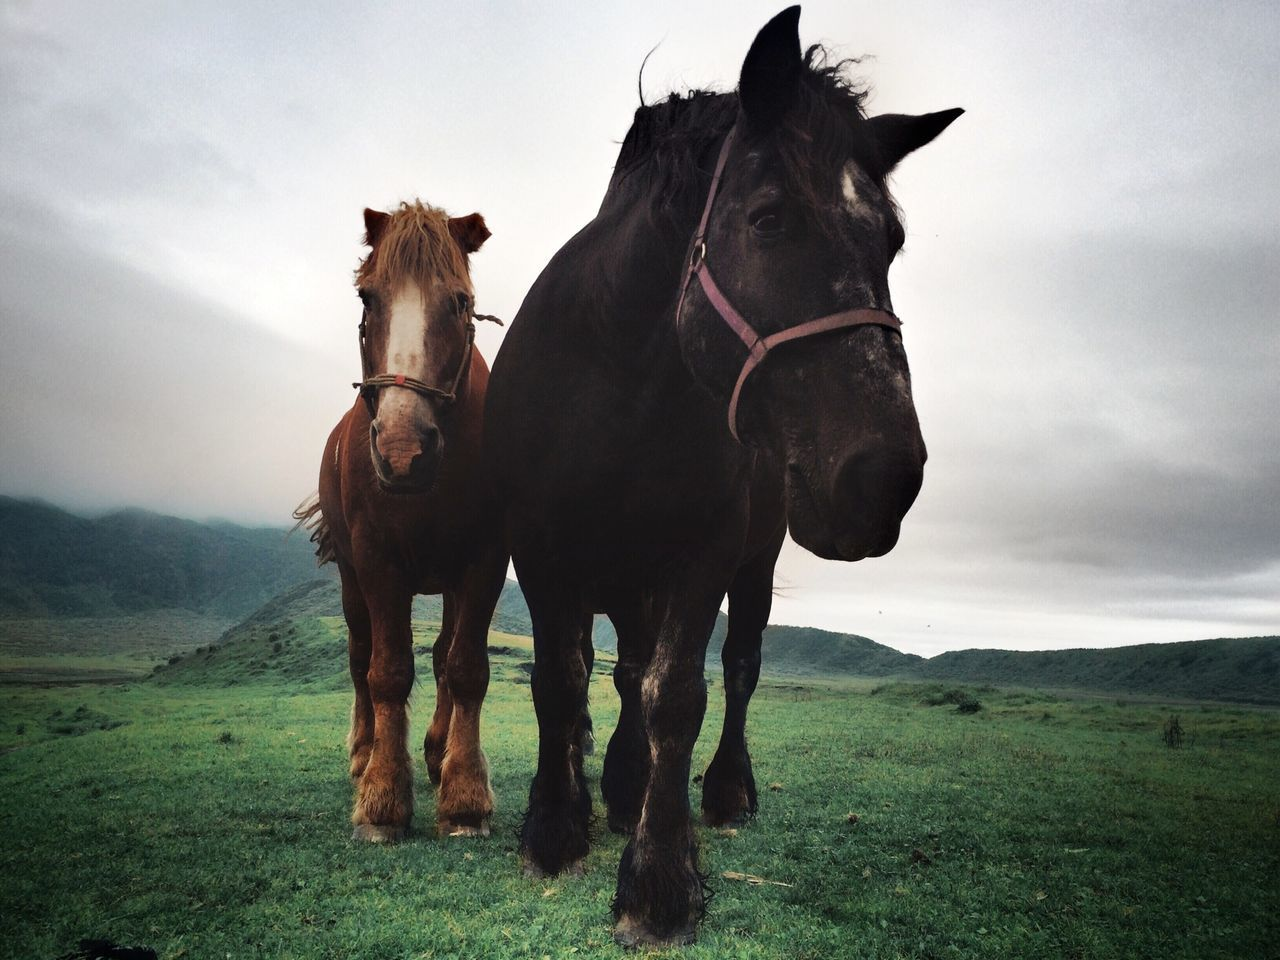 Low angle view of horses on grassy field